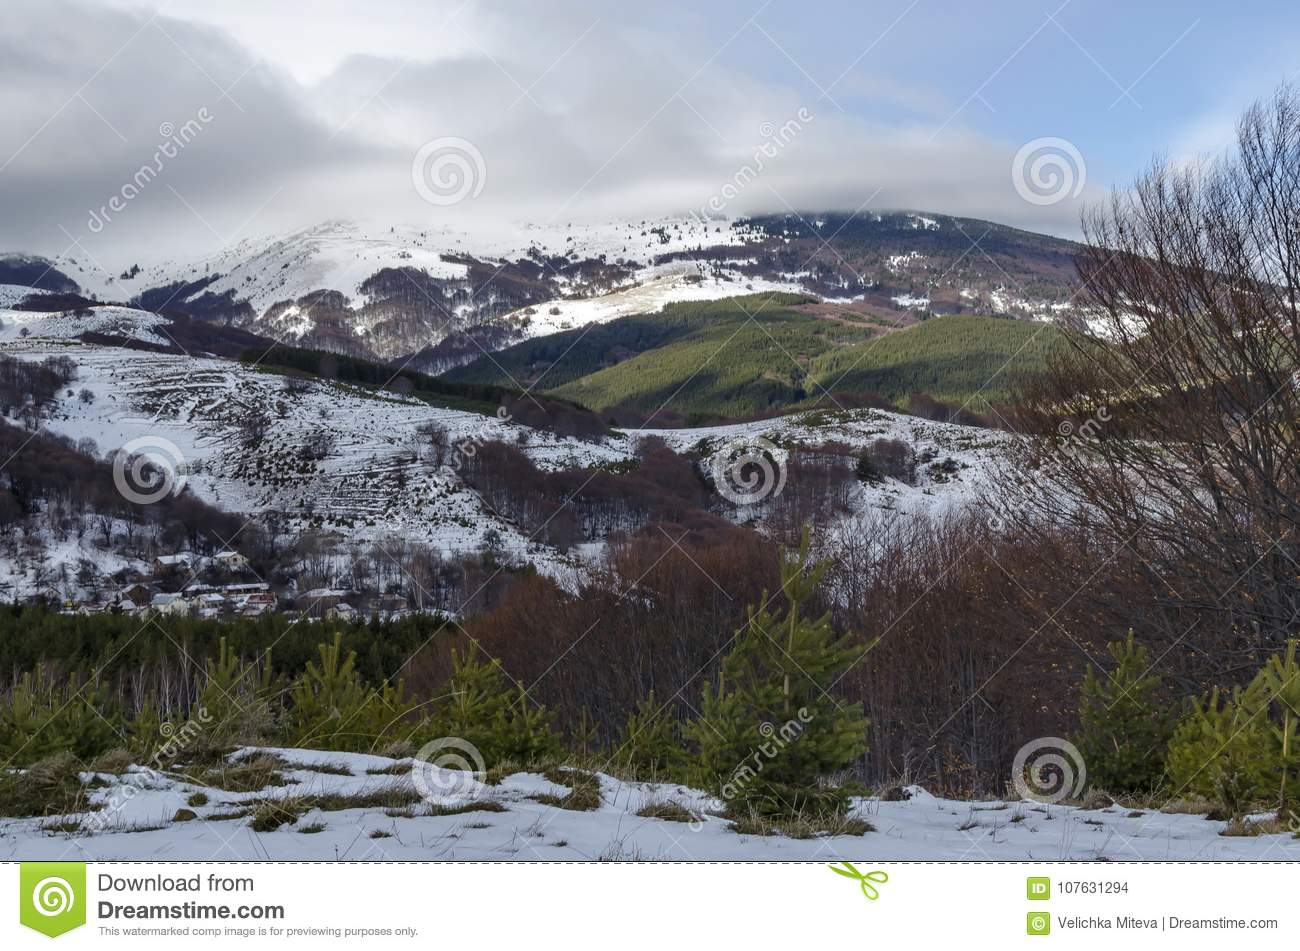 Majestic view of cloudy sky, winter mountain, snowy glade, residential district, conifer and deciduous forest from Plana mountain